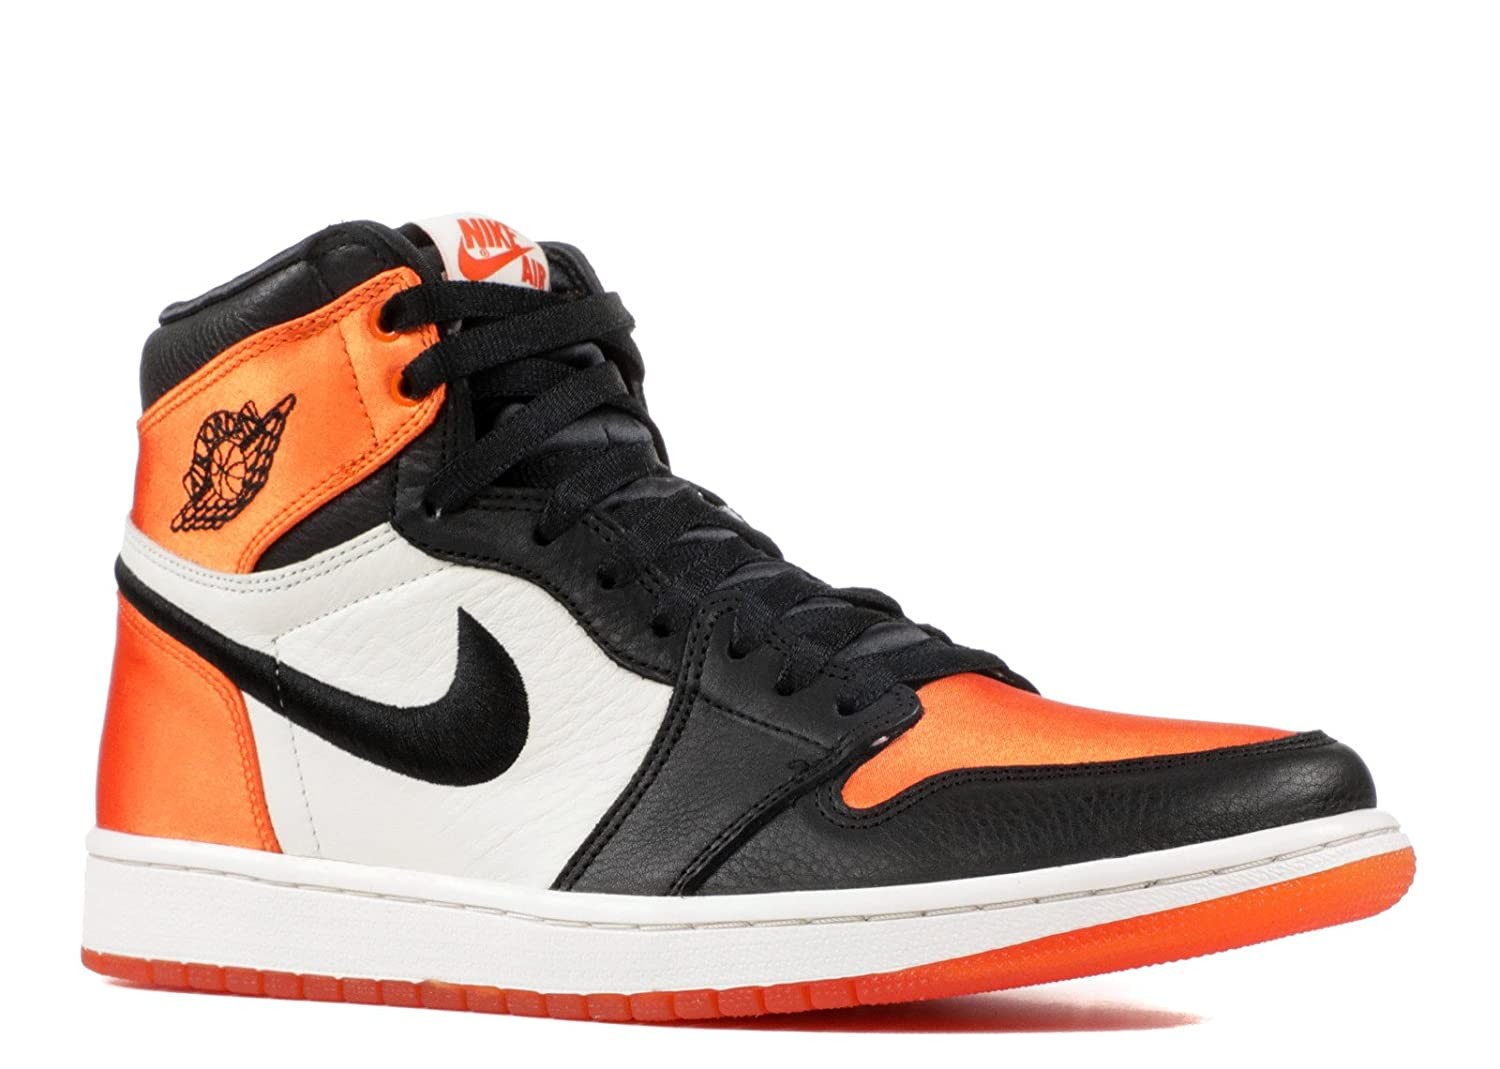 AIR JORDAN WMNS 1 RE HI OG SL 'Satin Shattered Backboard